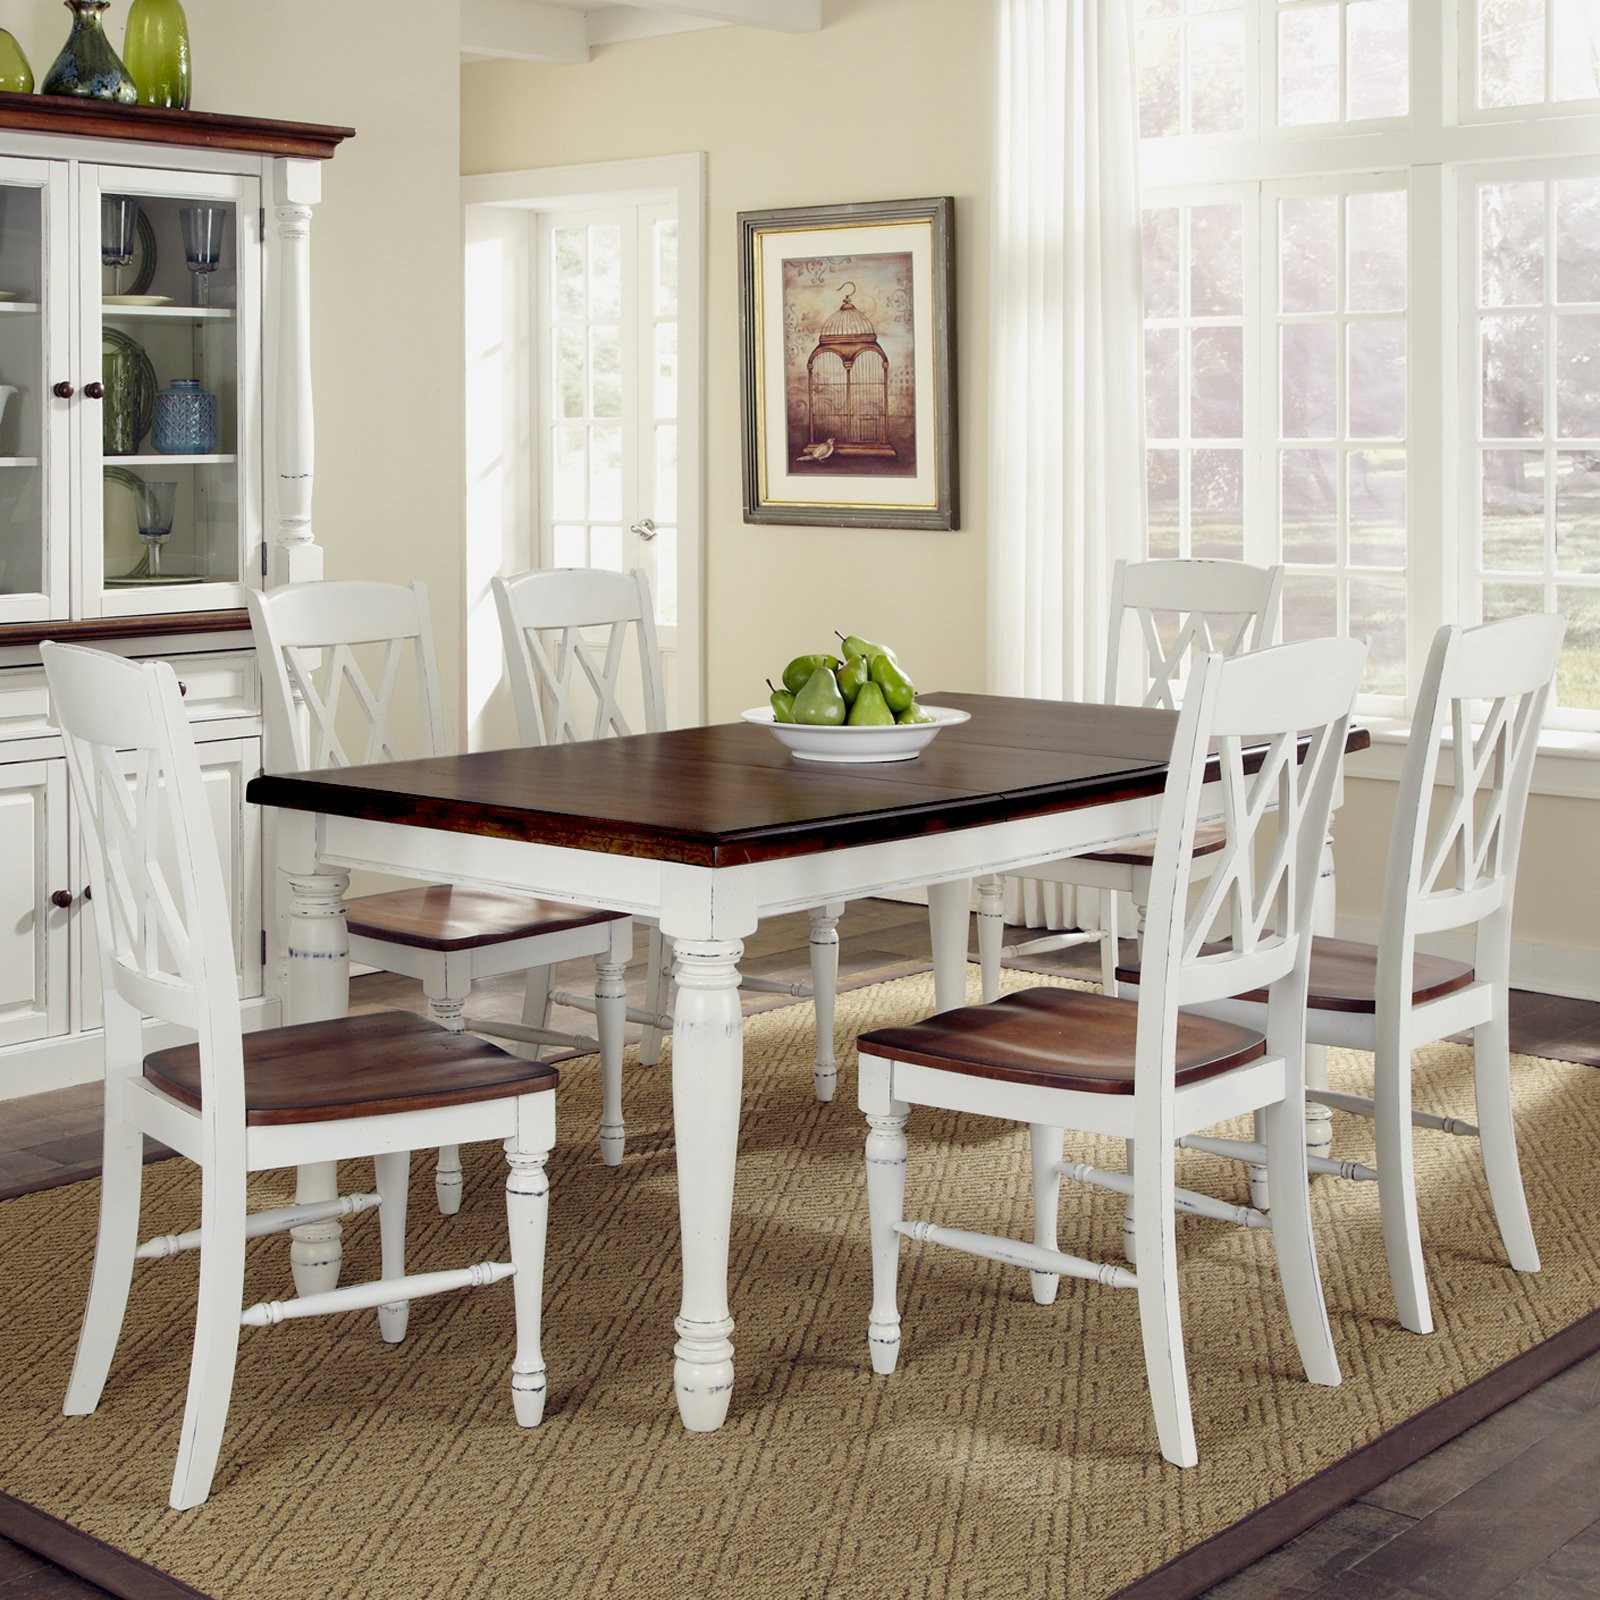 Best ideas about Dining Table Sets . Save or Pin Home Styles Monarch 7 Piece Dining Table Set with 6 Double Now.